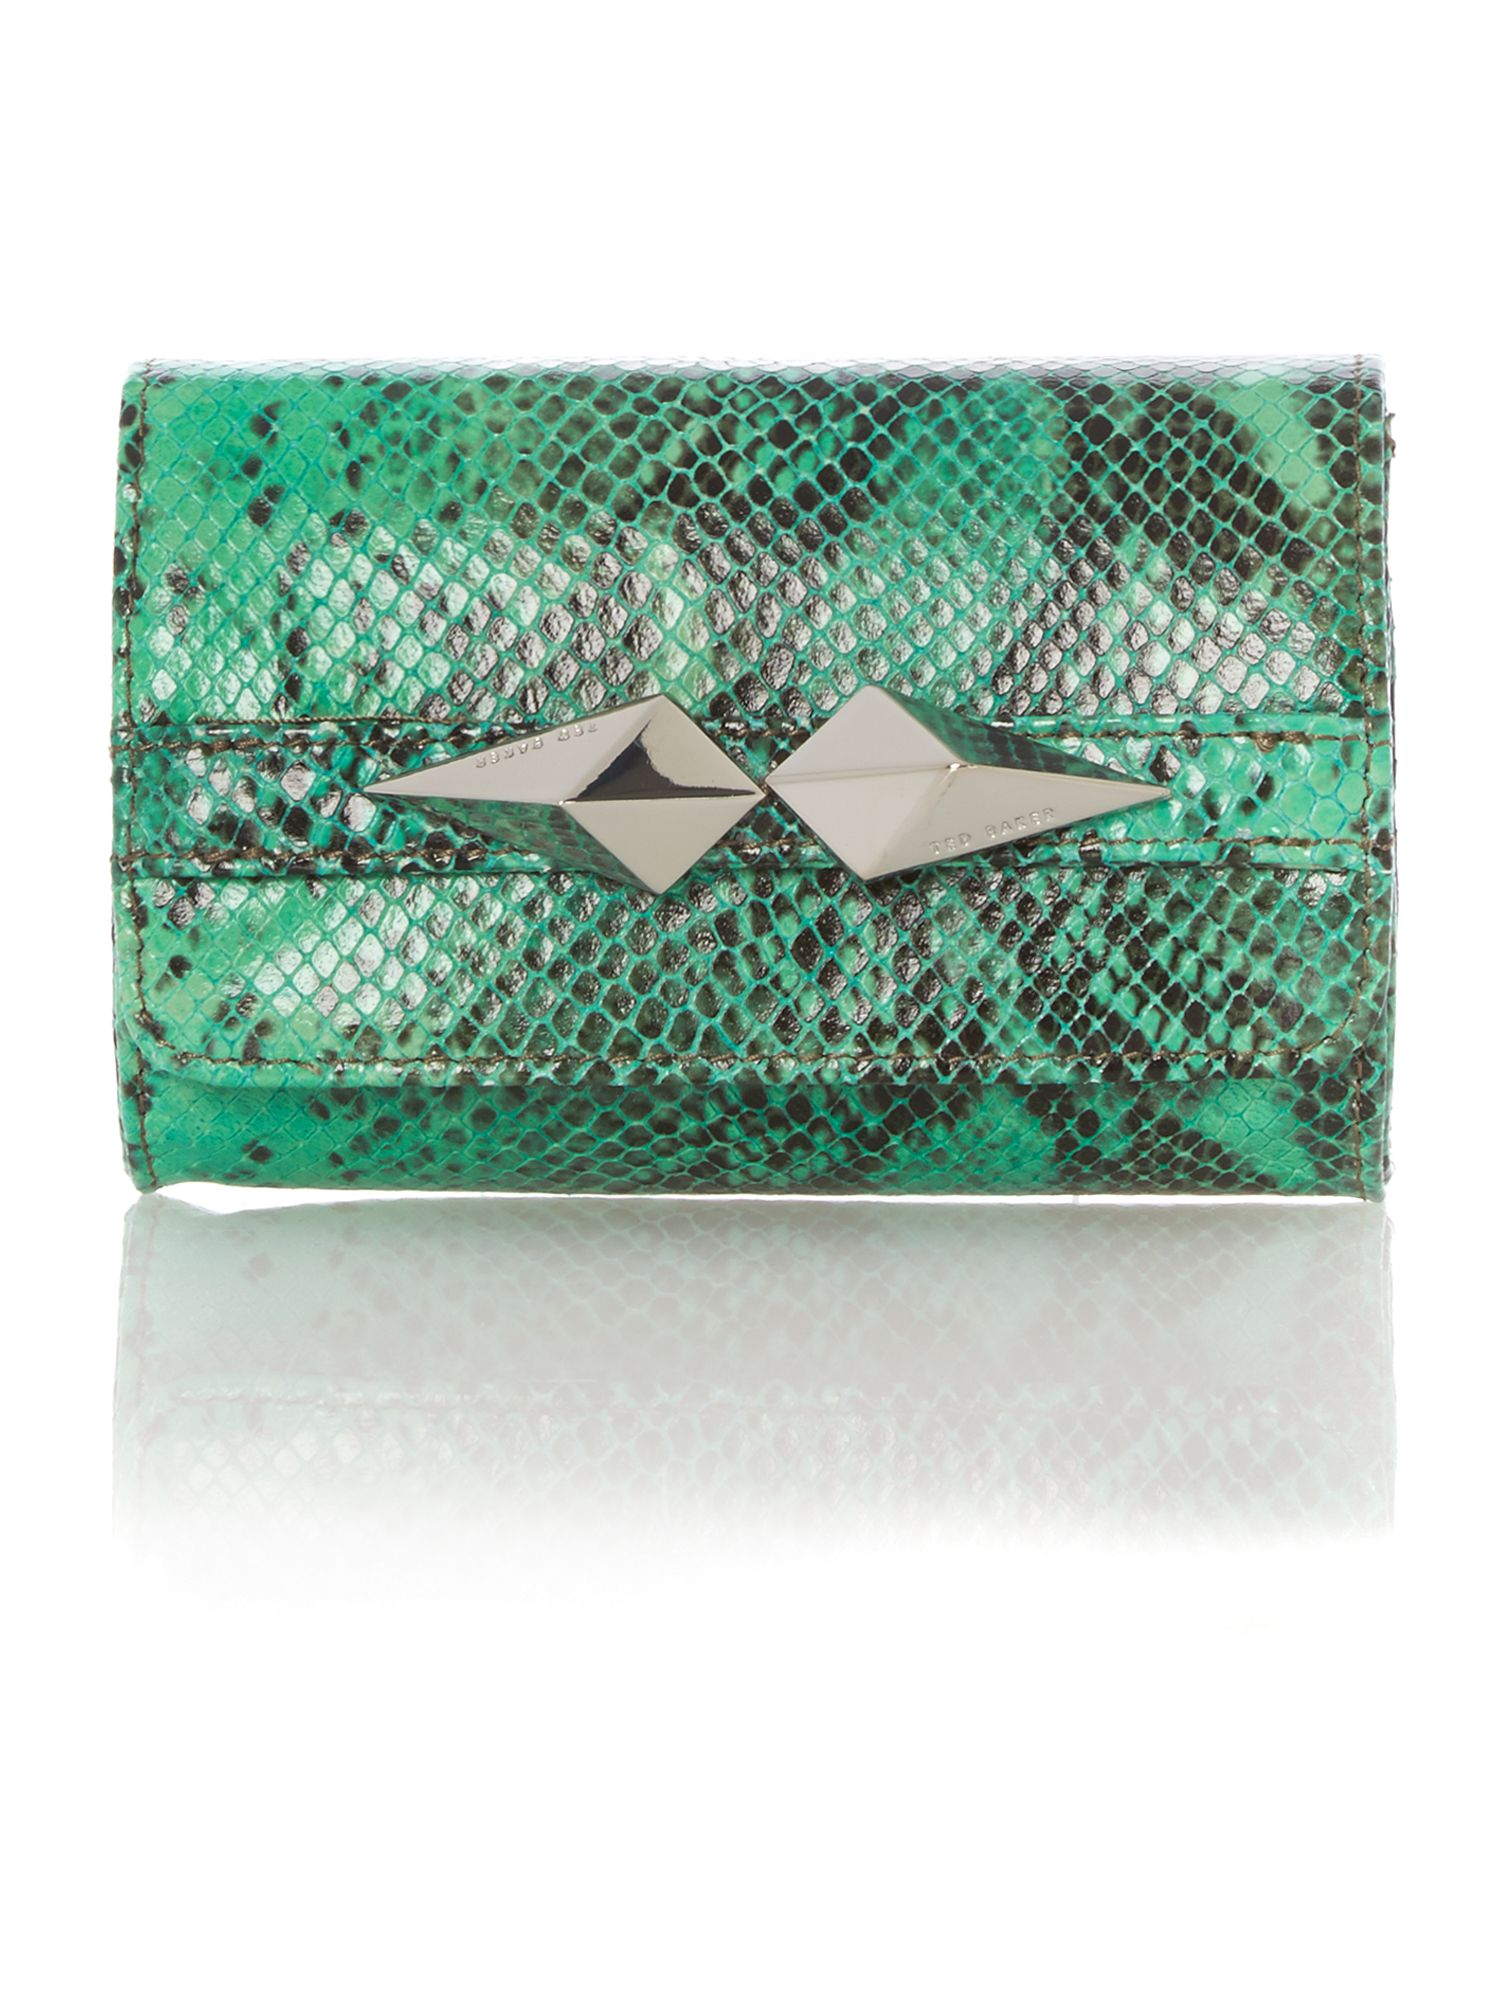 Mini green snake clutch bag